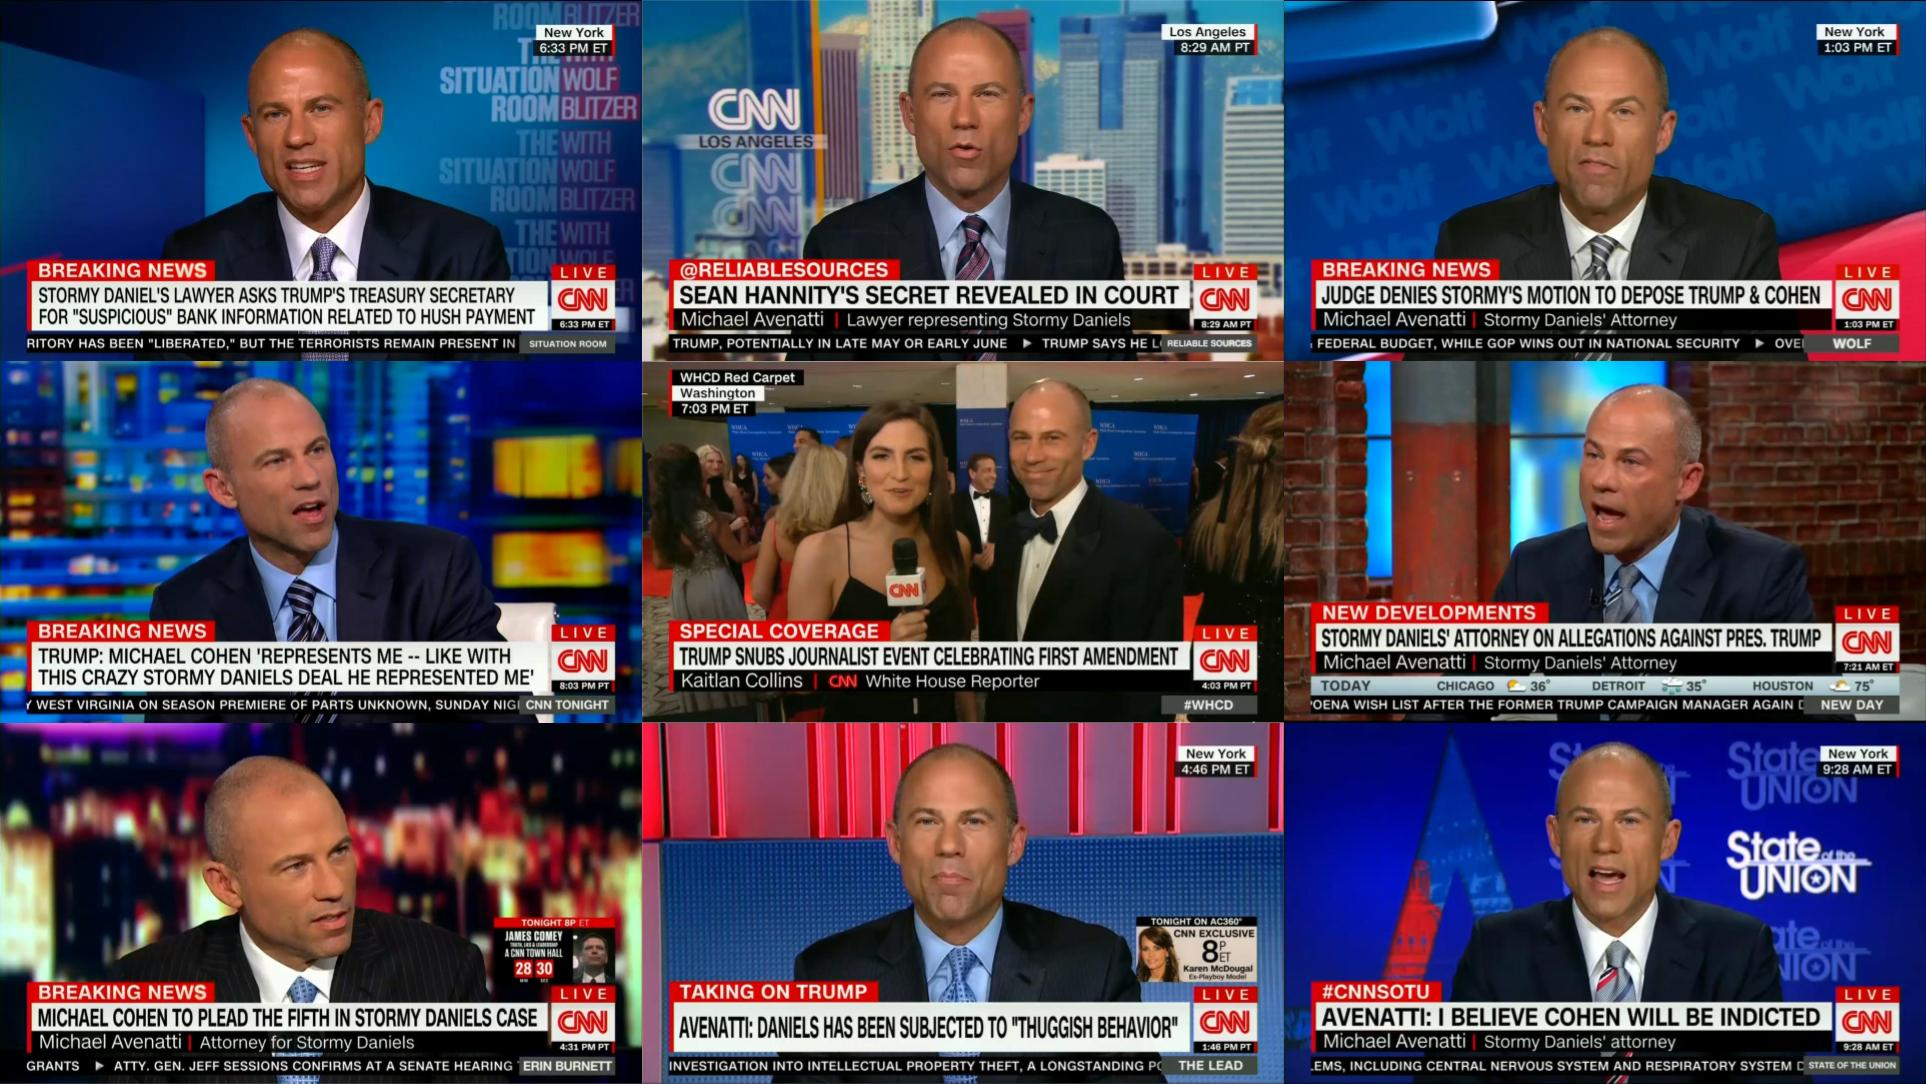 Cnn One A Day Cnn Hosts Porn Star S Lawyer Michael Avenatti 59 Times